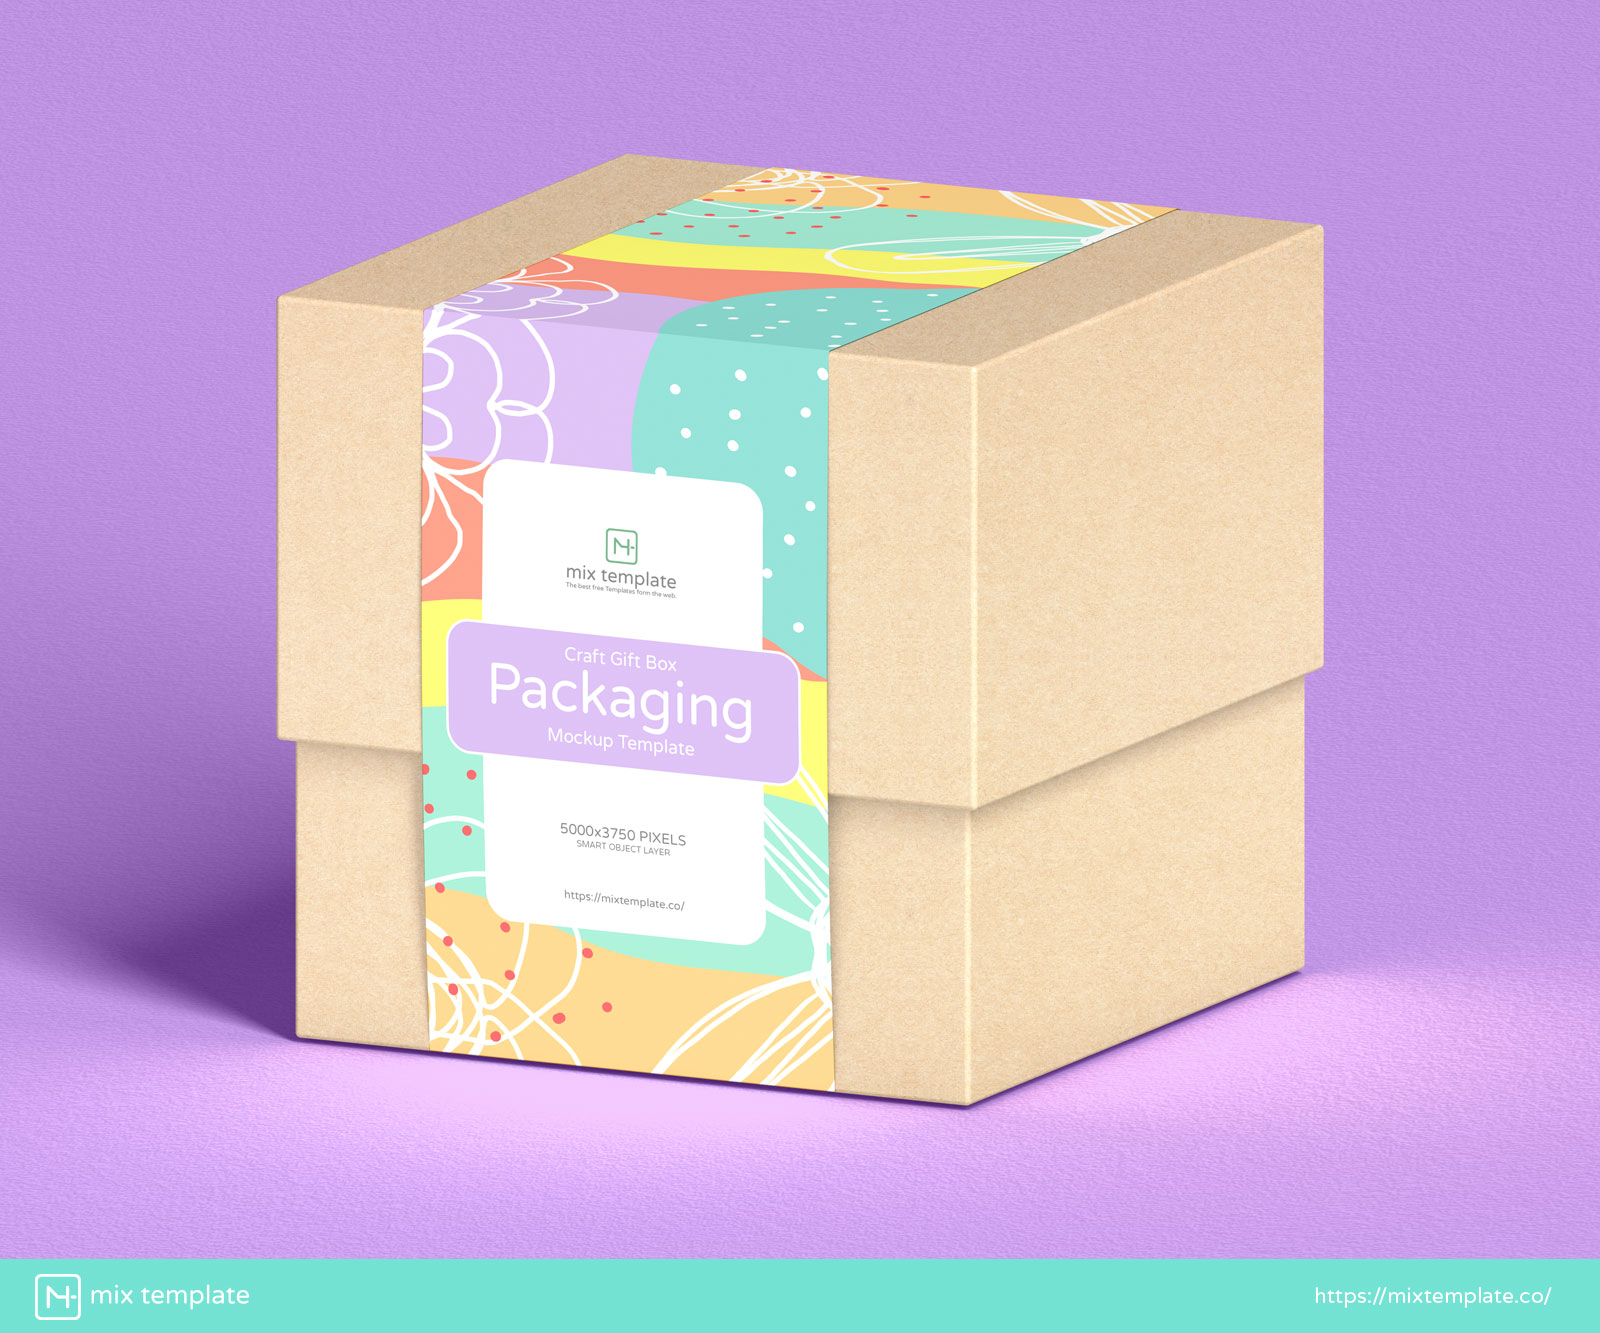 Free-Craft-Gift-Box-Packaging-Mockup-Template-38